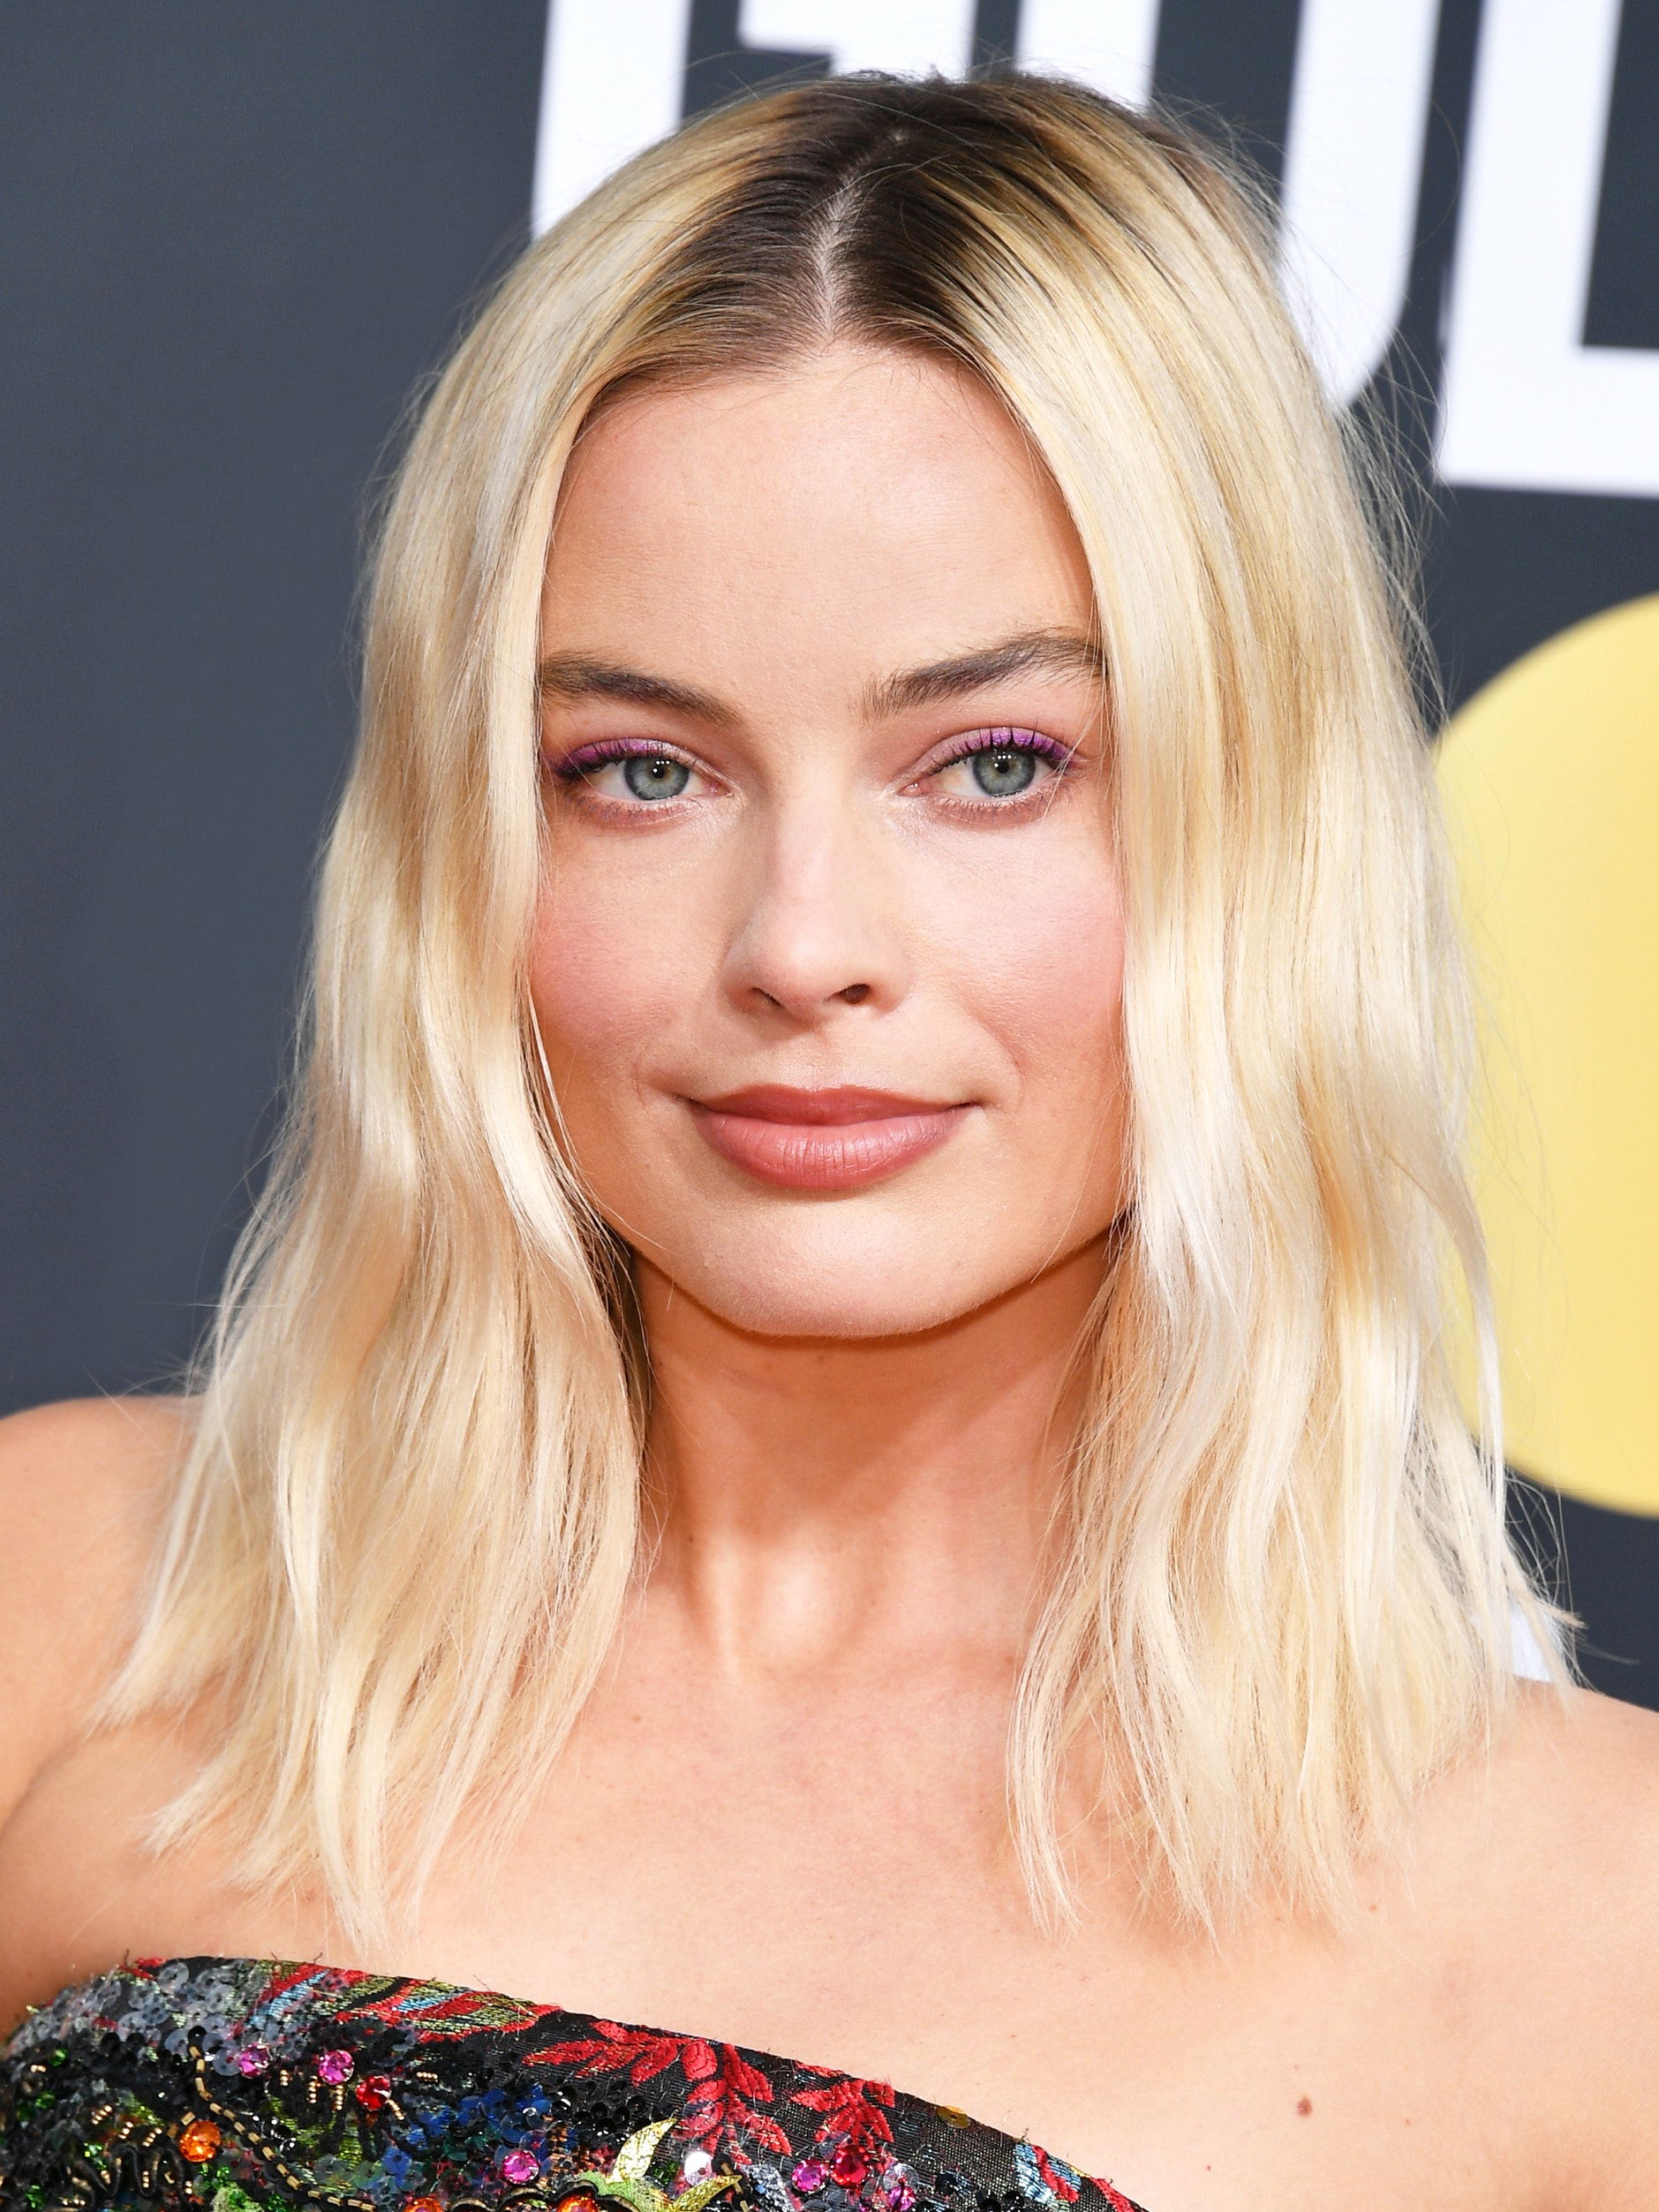 Margot Robbie Golden Globes hair and makeup look